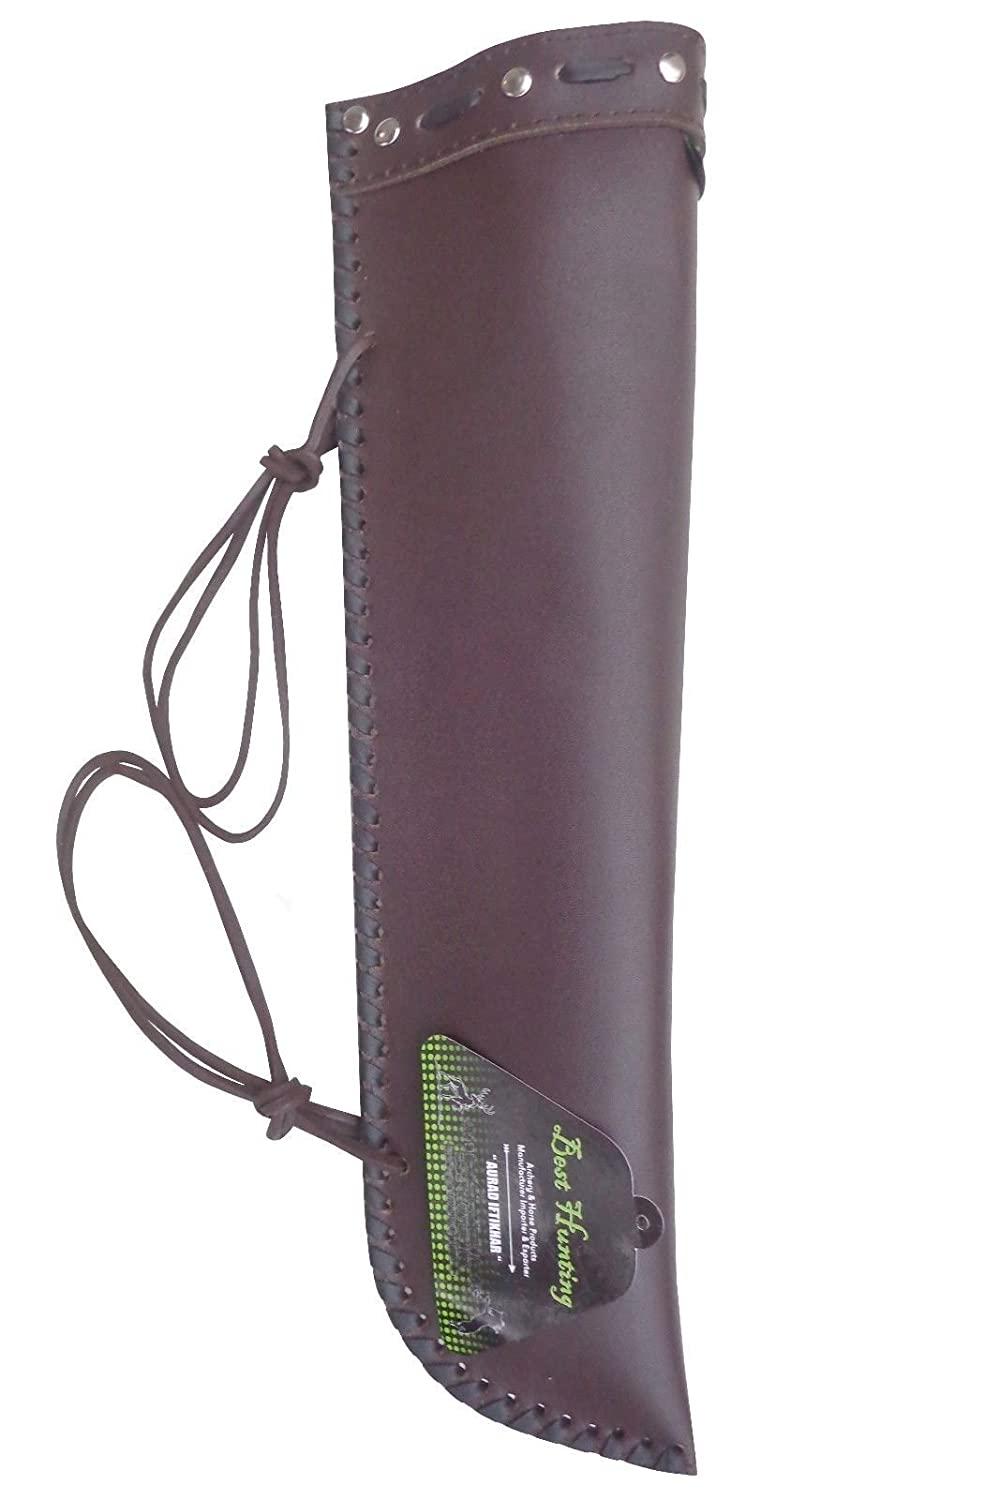 BEST FINE LEATHER BASS BOW QUIVER BQ-5354 BROWN Besthunting2017 4334273780